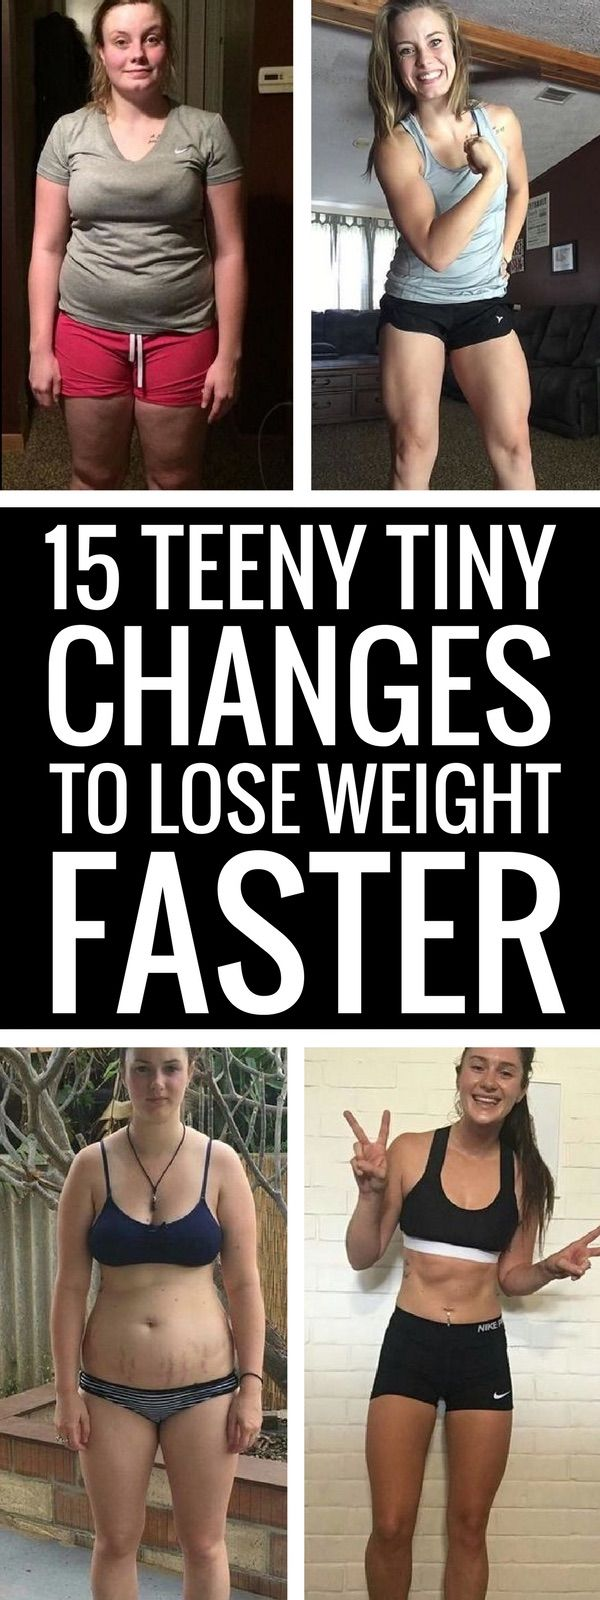 1188 Best Images About Diet/Weight Loss On Pinterest